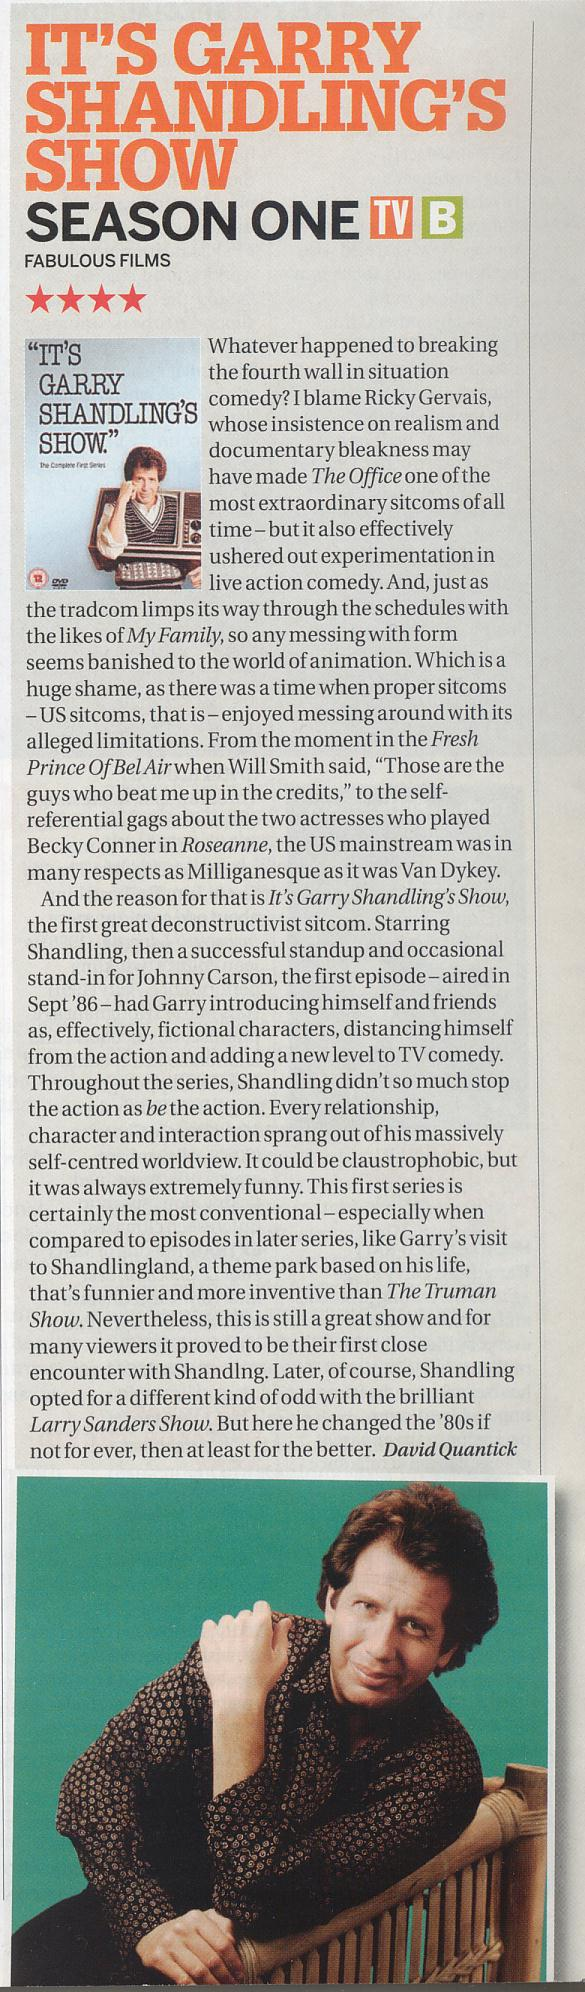 Garry Shandling's Show - review from Uncut magazine